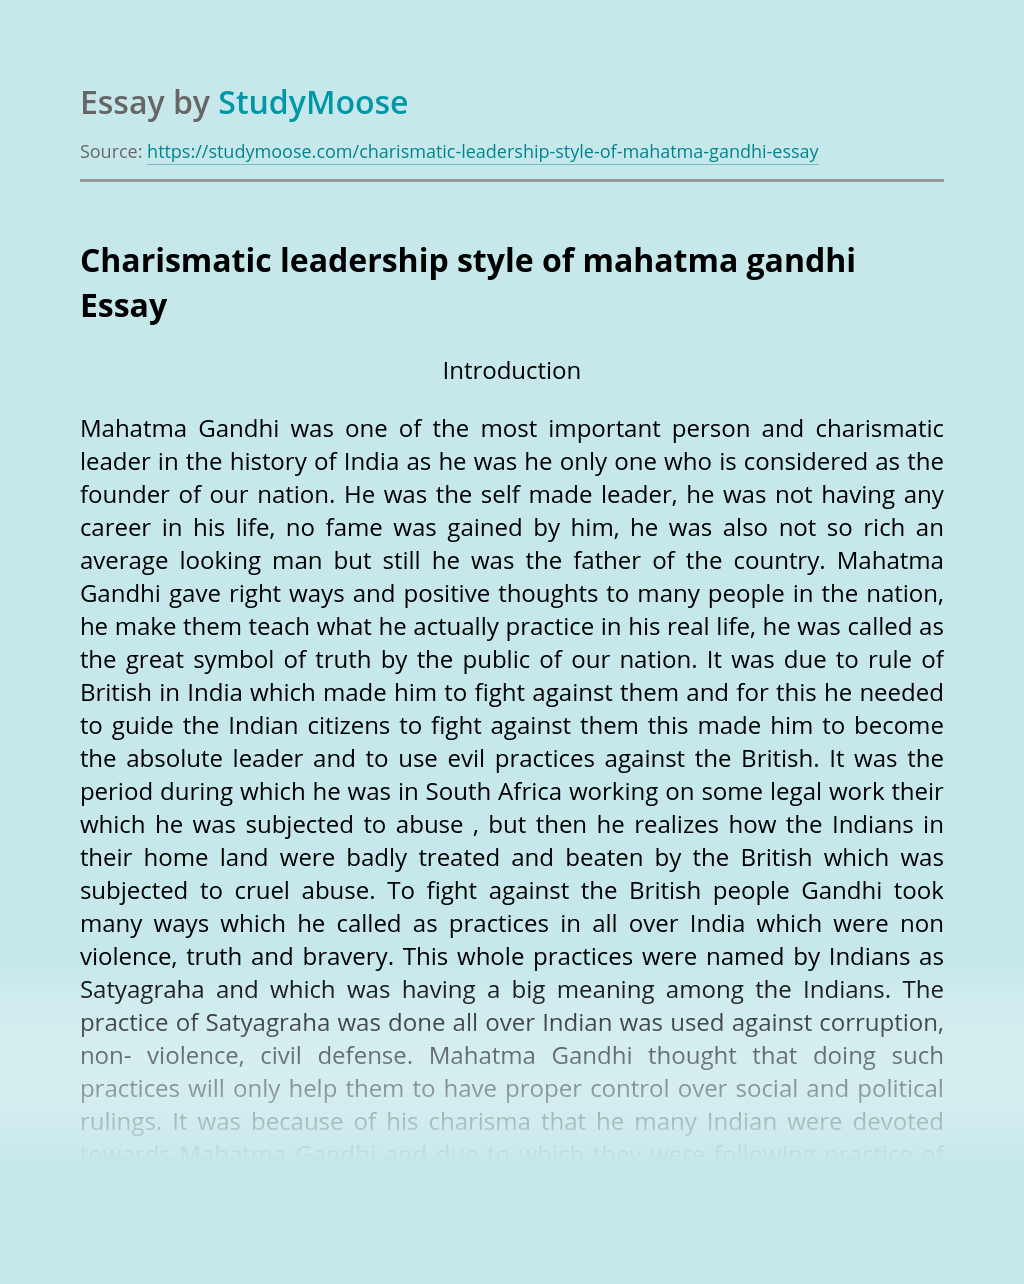 Charismatic leadership style of mahatma gandhi